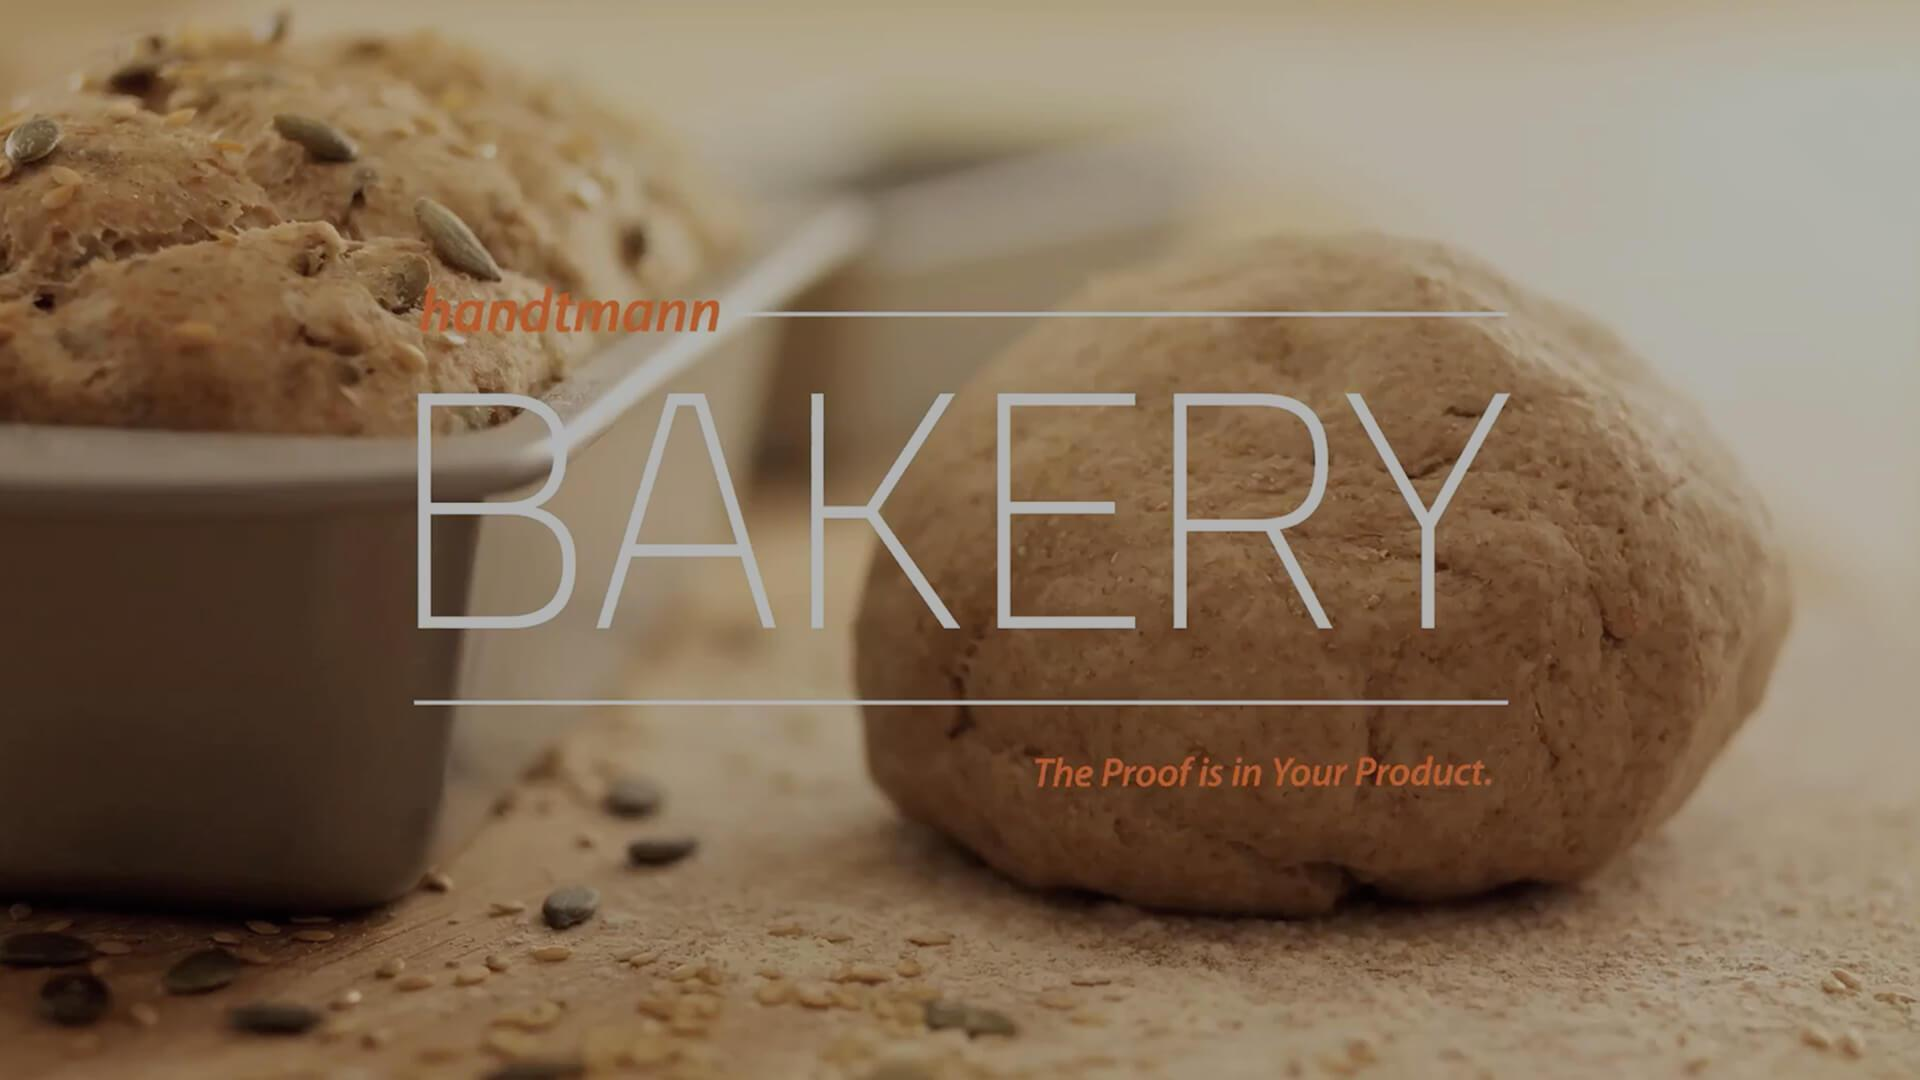 Handtmann Bakery Solutions Video